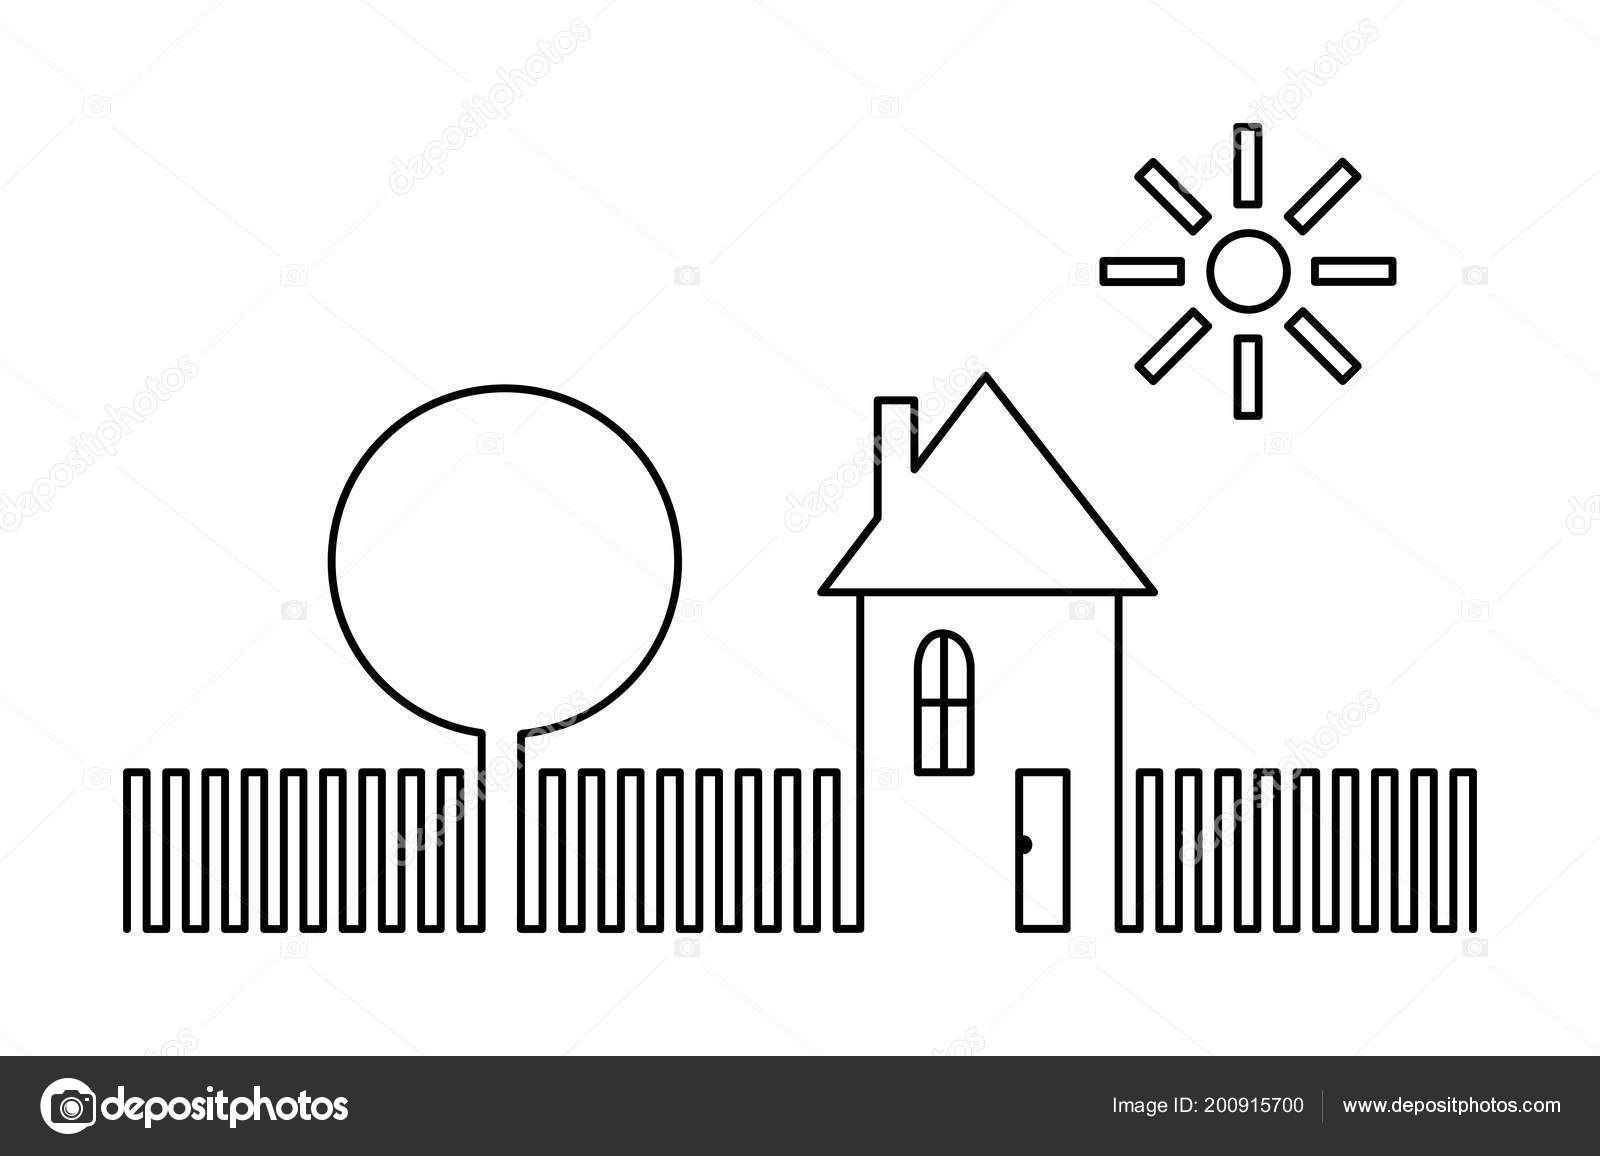 House Tree Sun Simple Schematic Black White Drawing Minimalism ... on tree roots silhouette, tree box, tree trench, tree switch, tree anatomy, tree display, tree 3d, tree graph, tree cable, tree wire, tree diagram, tree guide, tree cell, tree blueprint, tree photograph, tree visualization, tree chart, tree maintenance, tree project, tree tutorial,